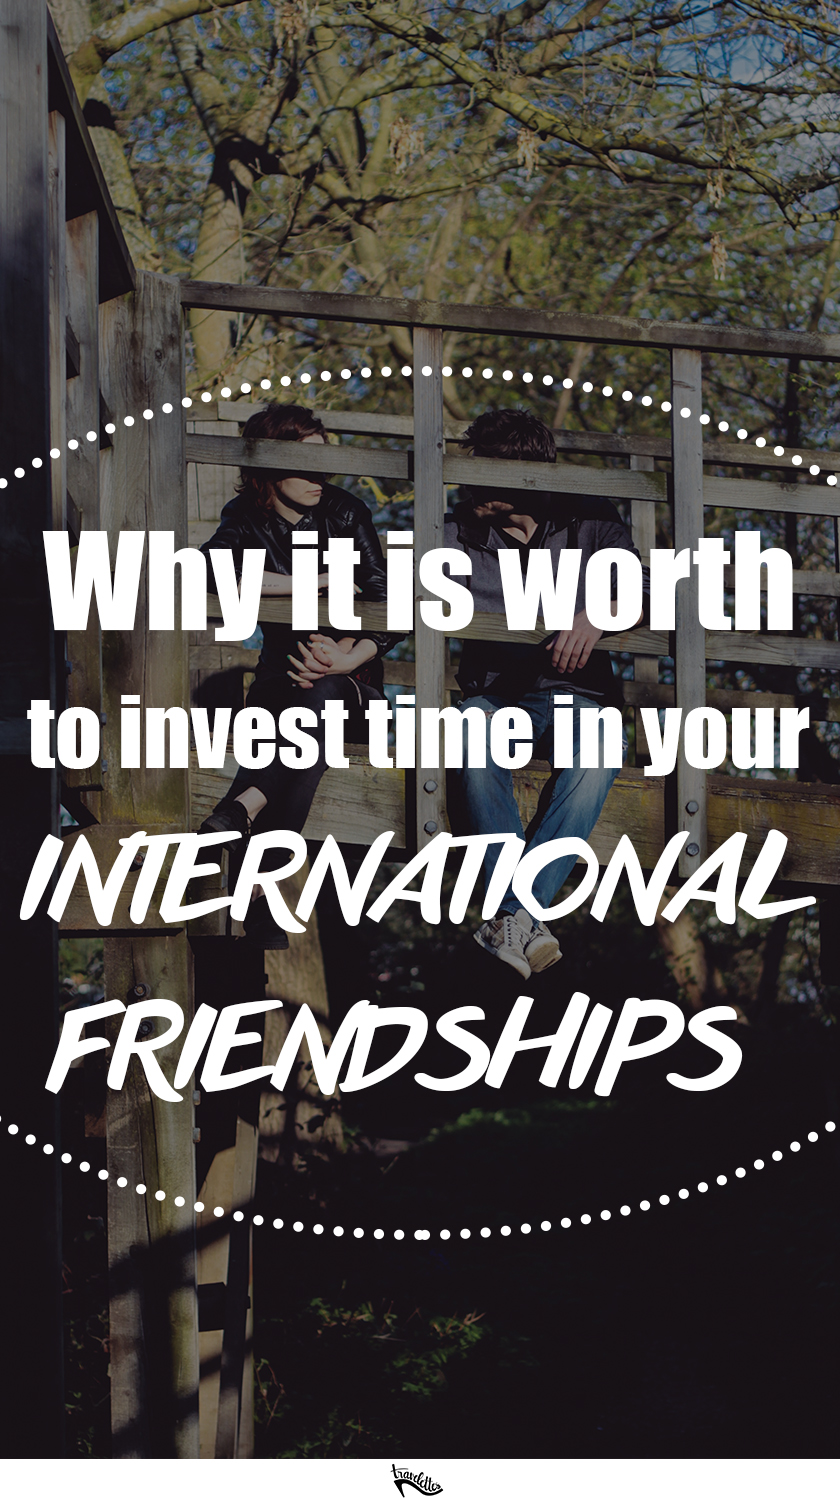 Why it's worth investing time in your international friendships